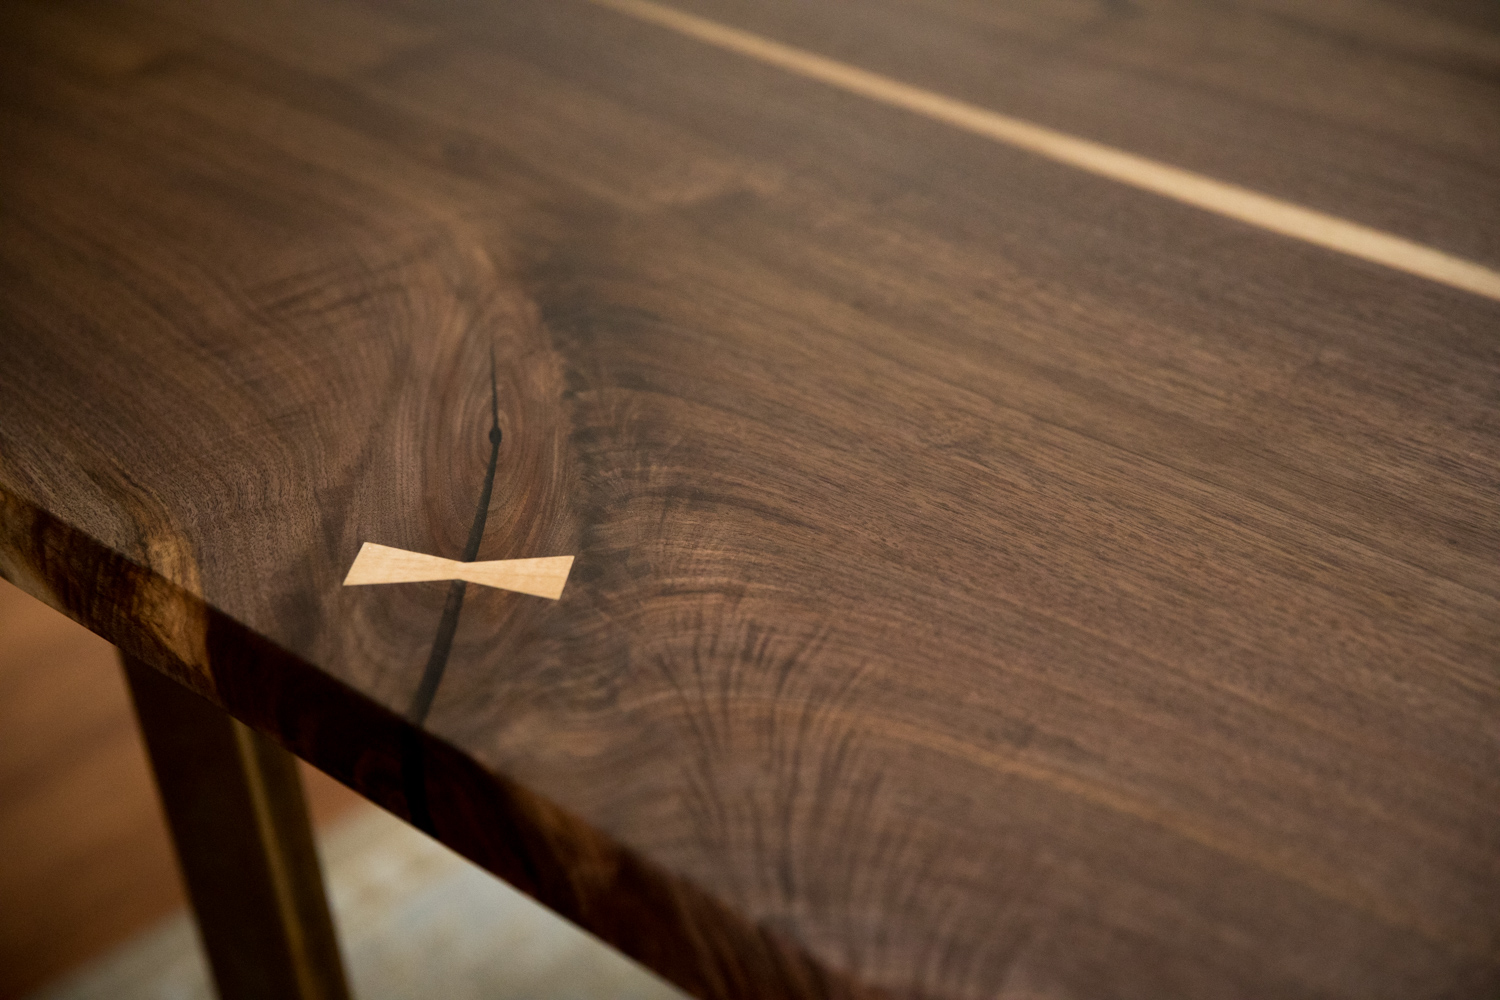 Big Tooth Co_Fort Wayne Indianapolis Woodworking _Walnut Dining Table (18 of 51).jpg